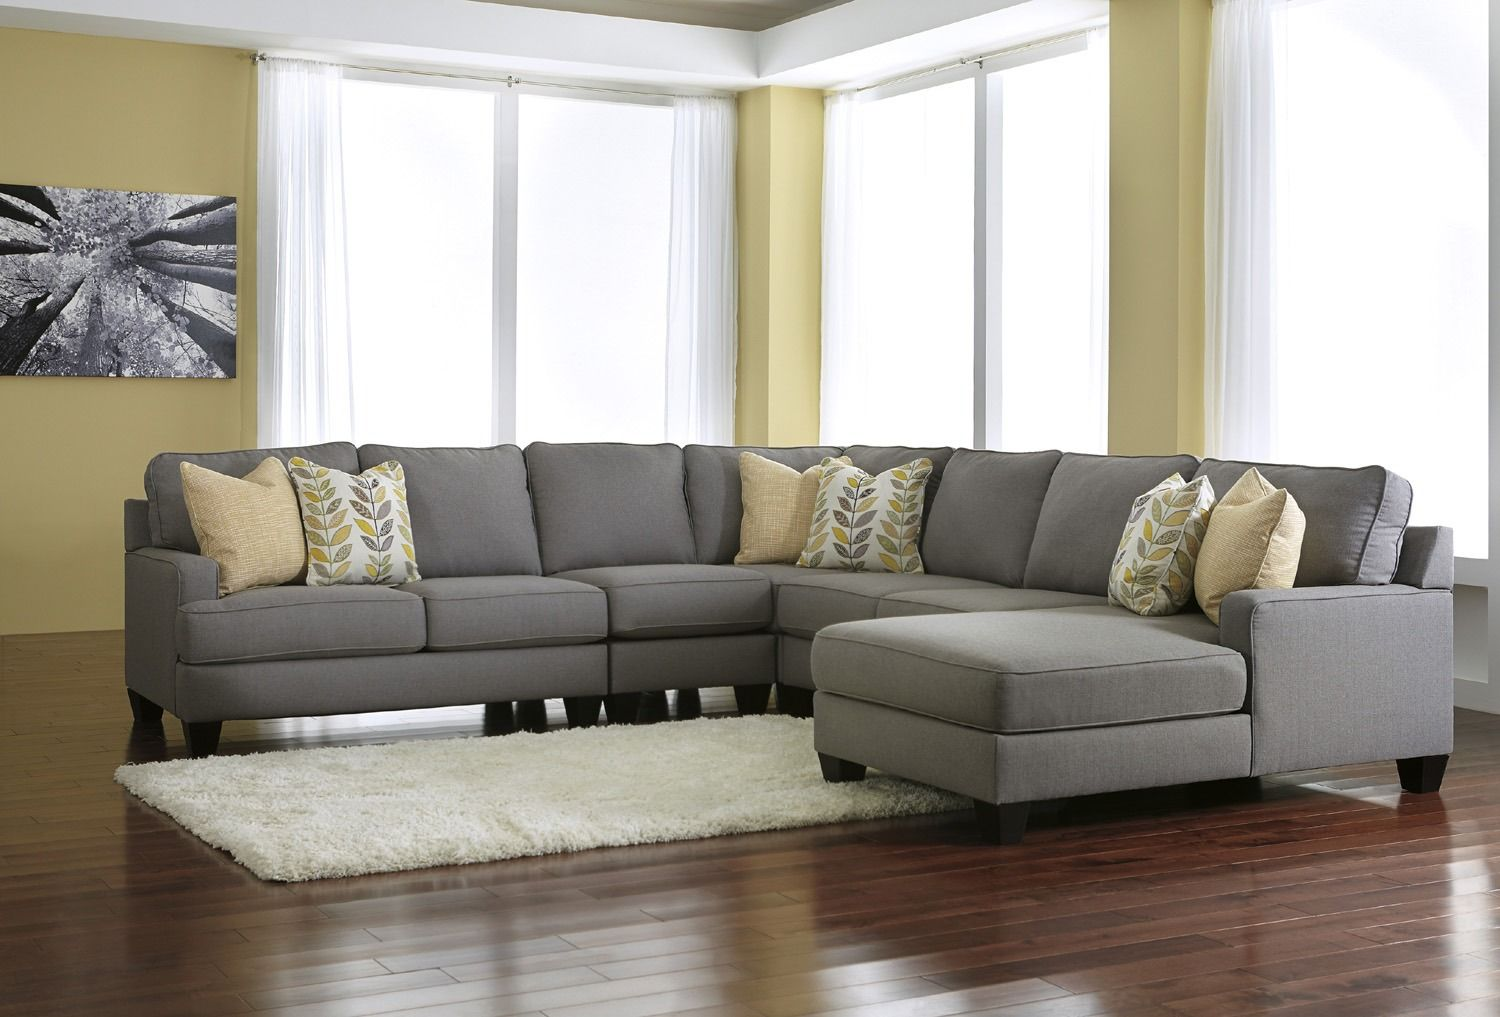 Chamberly 3 Piece Sectional in Gray by Ashley - Home Gallery Stores $1,280